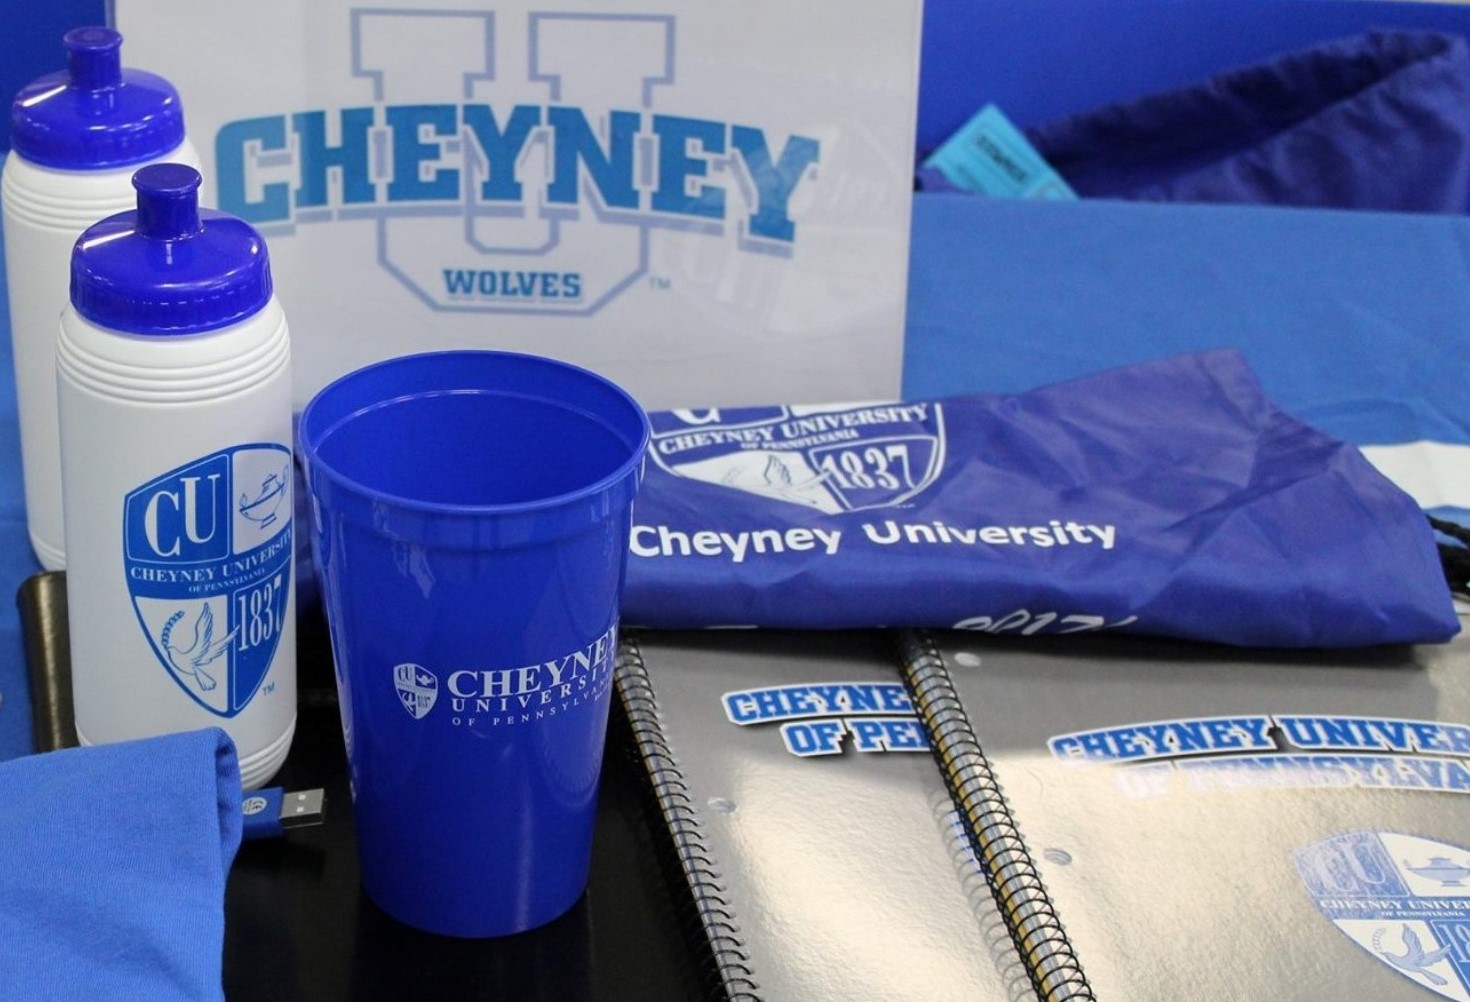 Cheyney University Gets One More Year to Implement Turnaround Plan